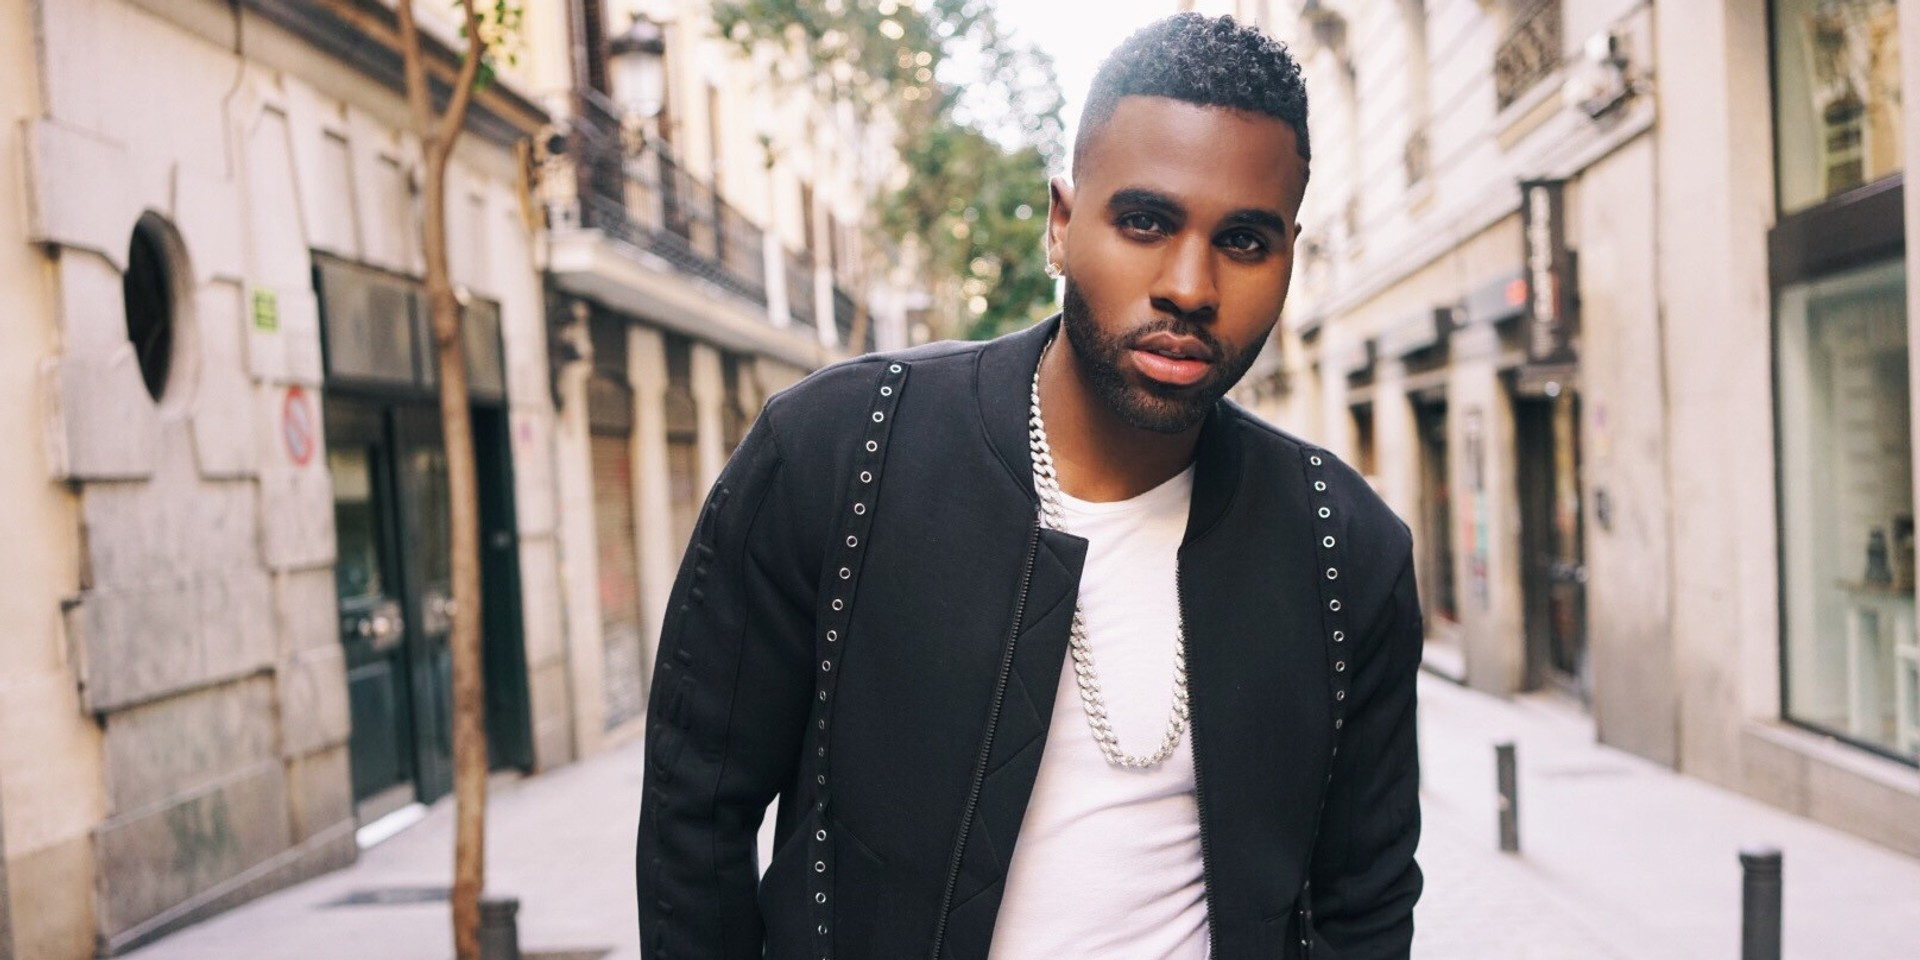 Jason Derulo releases 'Colors', one of the official FIFA World Cup 2018 anthems – listen